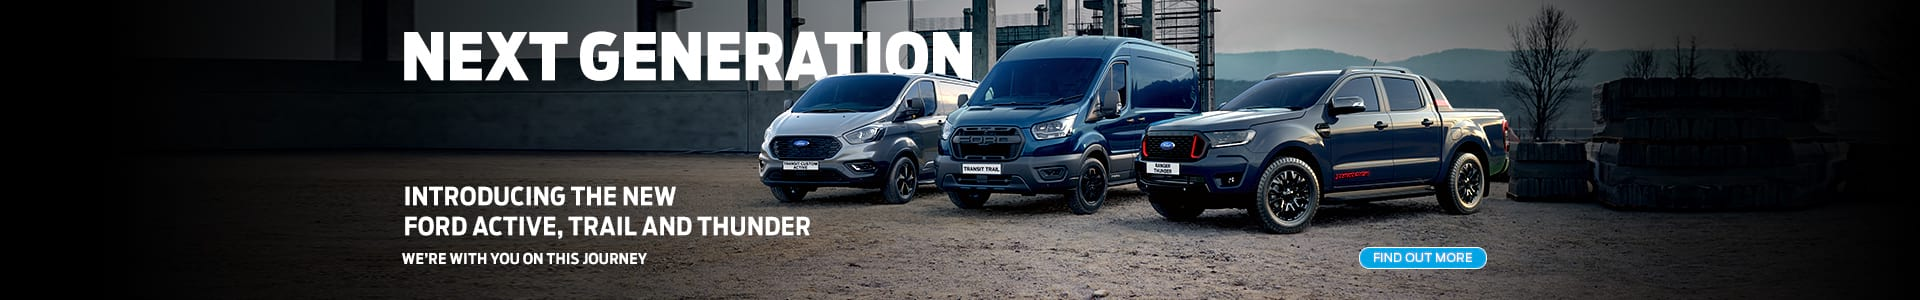 Ford Transit Centre, the Next Generation